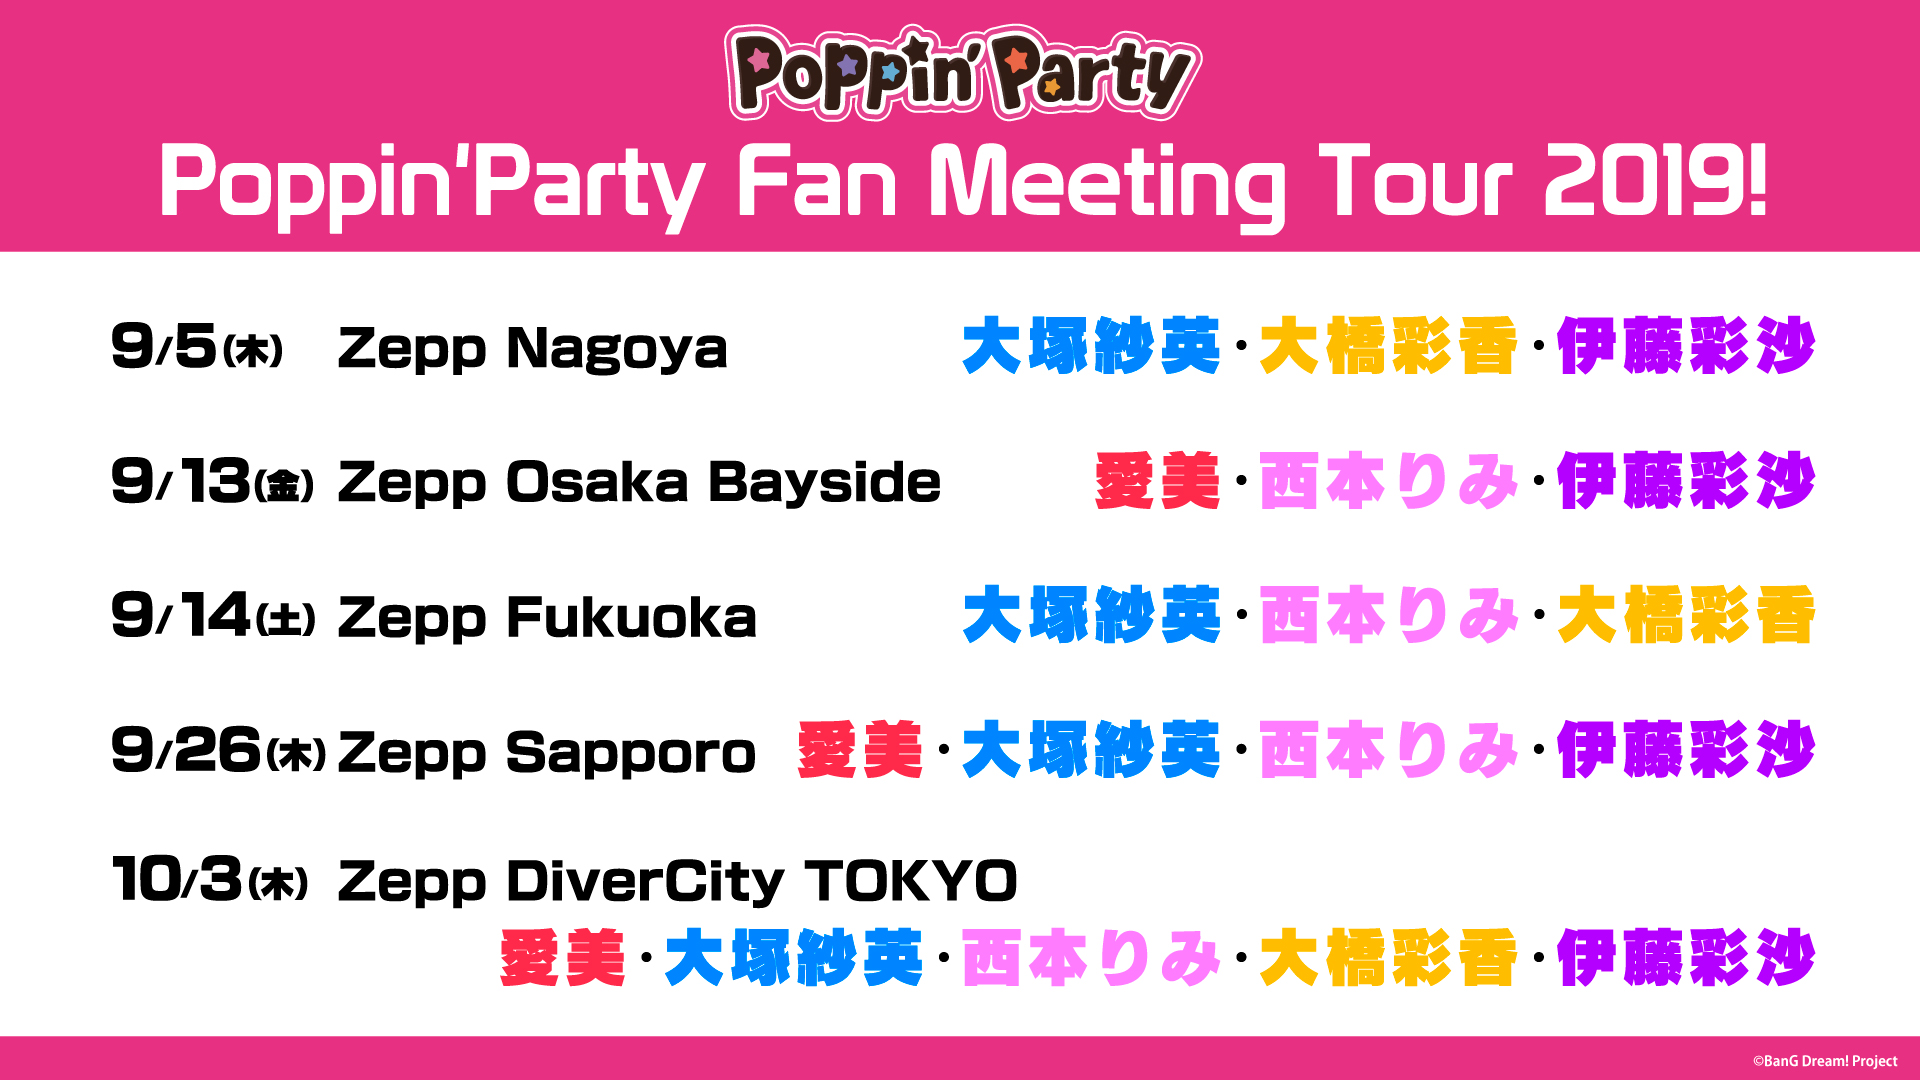 Poppin'Party Fan Meeting Tour 2019!の出演者情報を解禁!